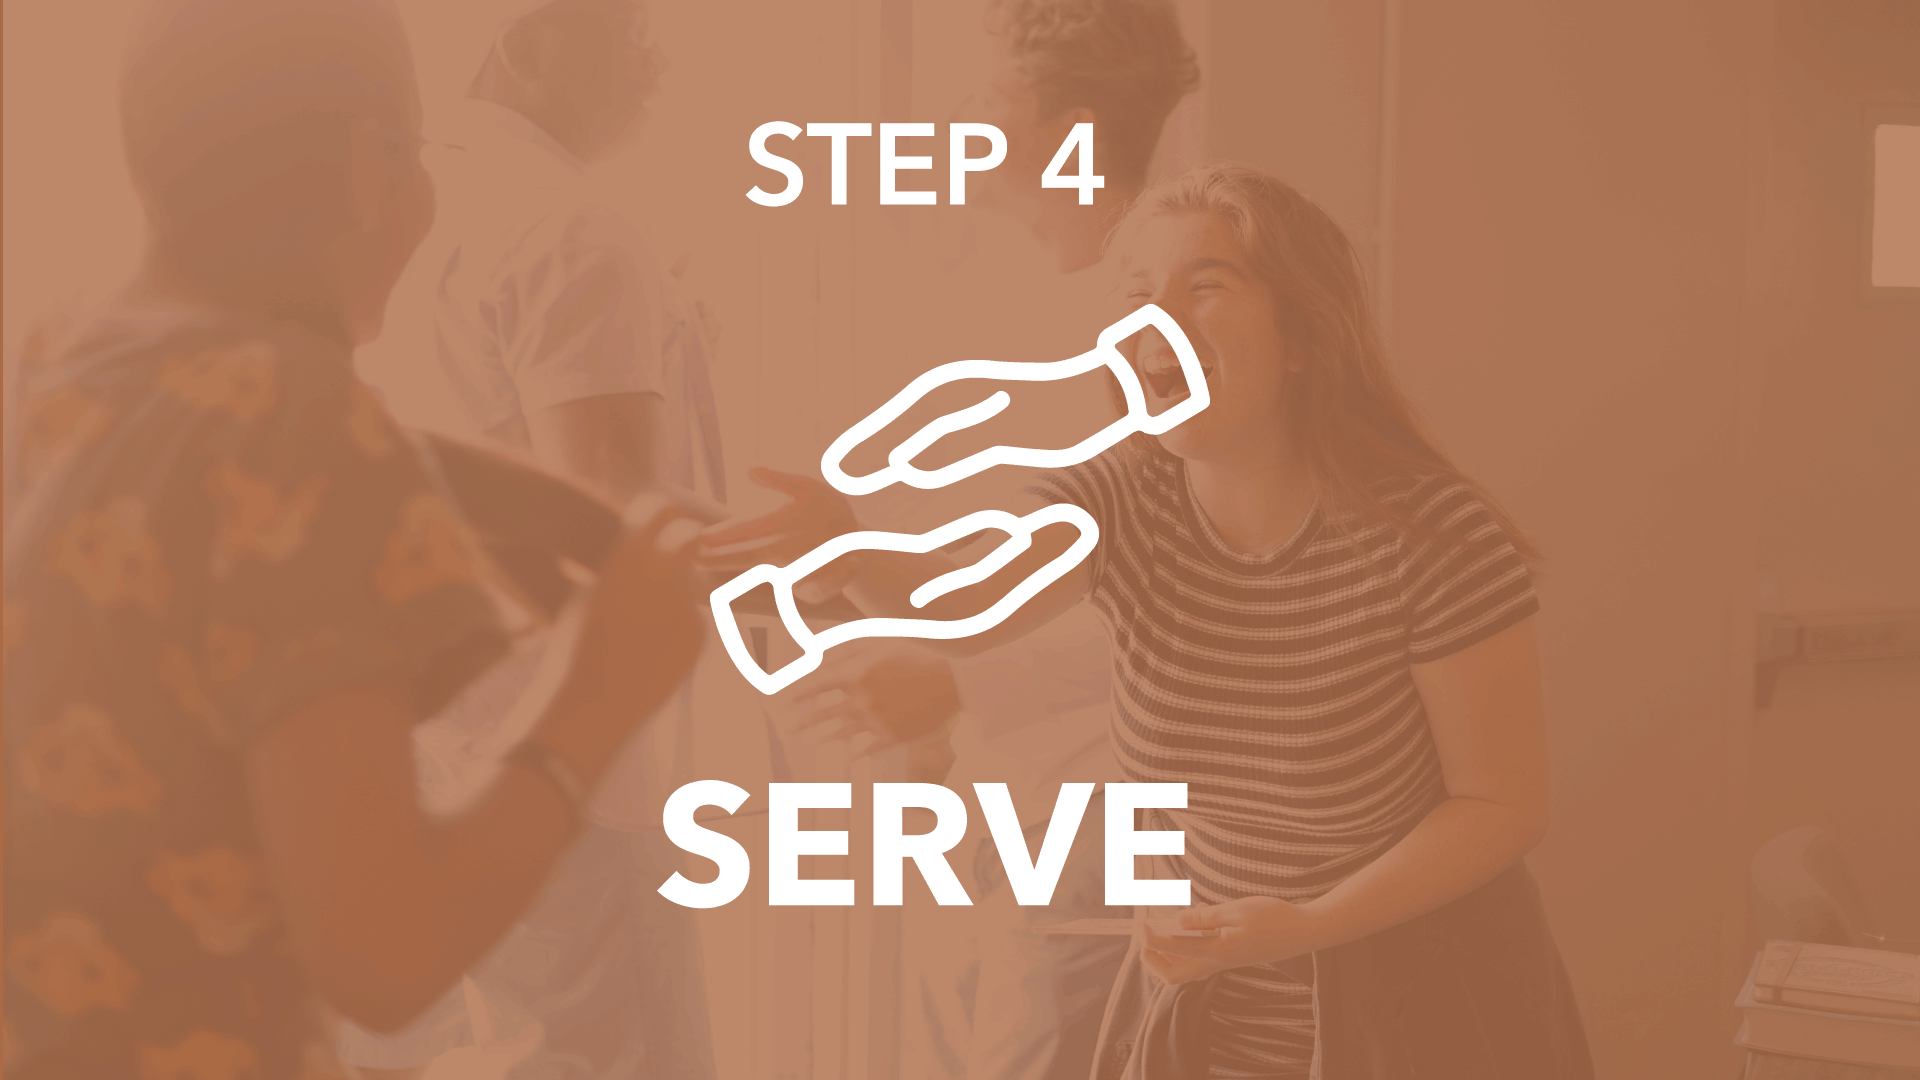 """Take a """"Backstage Pass"""" tour of The Cause Church and connect with opportunities to live out your purpose and  SERVE God  on The Cause Team, making an eternal impact for Jesus in the lives of others.   Step 4 meets the 4th Sunday of each month"""